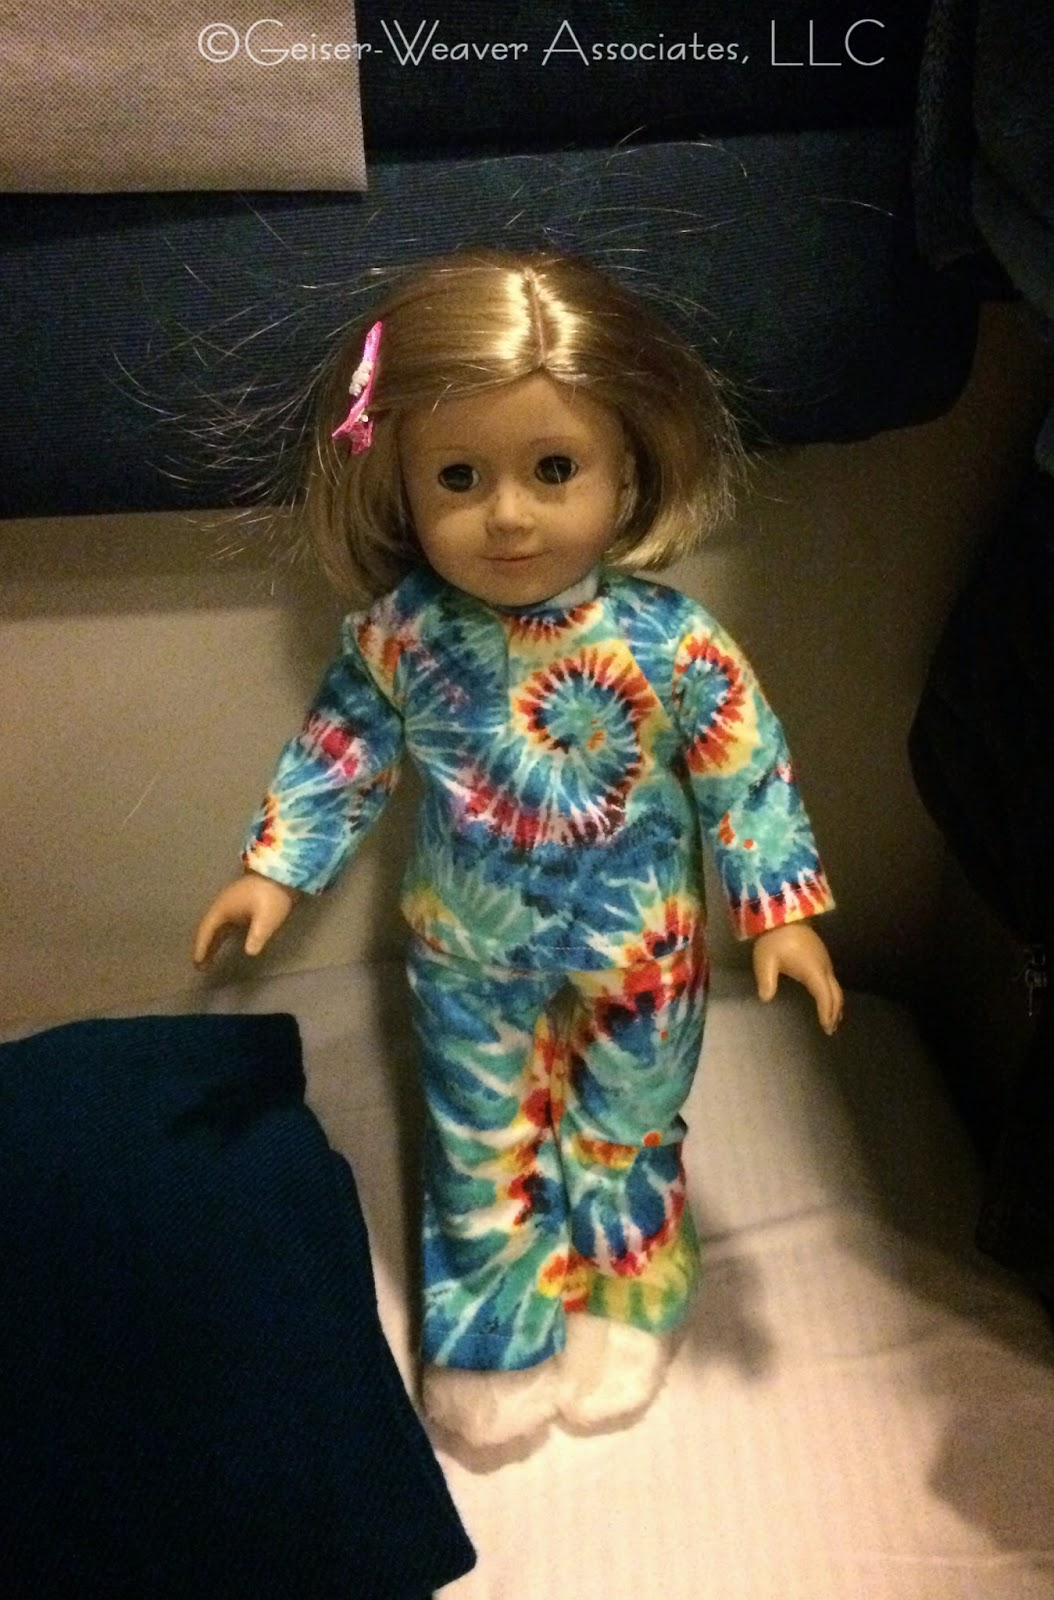 Kit gets ready for bed in the sleeper car on the train- outfit by Geiser-Weaver Associates, LLC